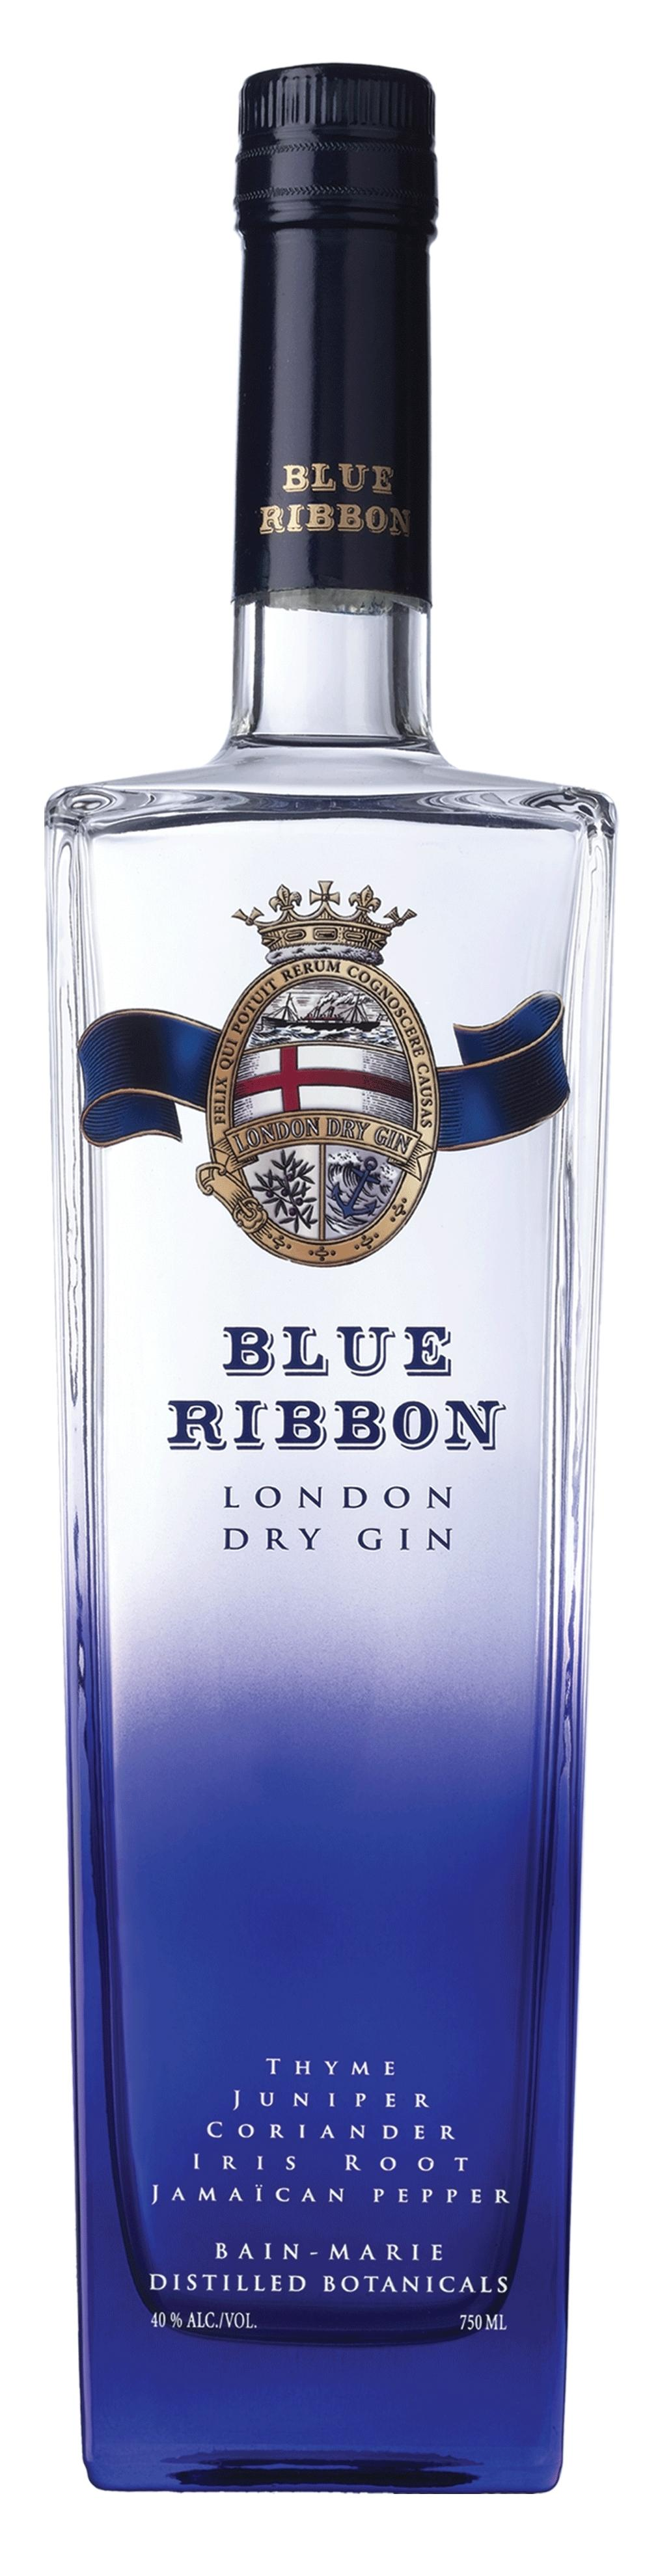 Blue Ribbon London Dry Gin